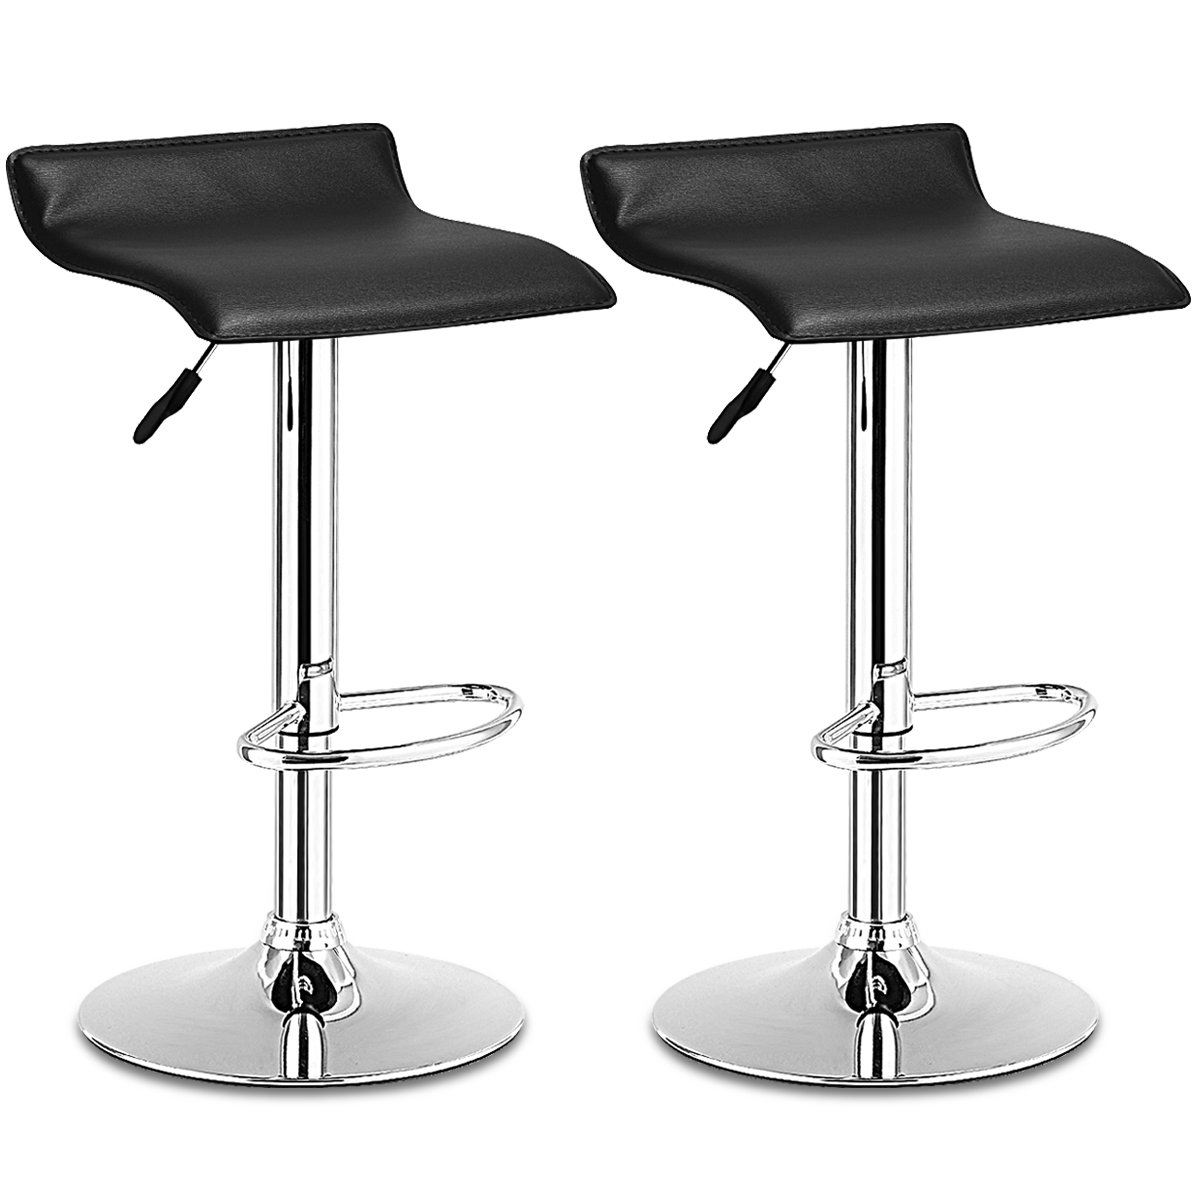 COSTWAY Set Swivel Bar Stools Adjustable Contemporary Modern Design Chrome Hydraulic PU Leather Backless of 2 Black